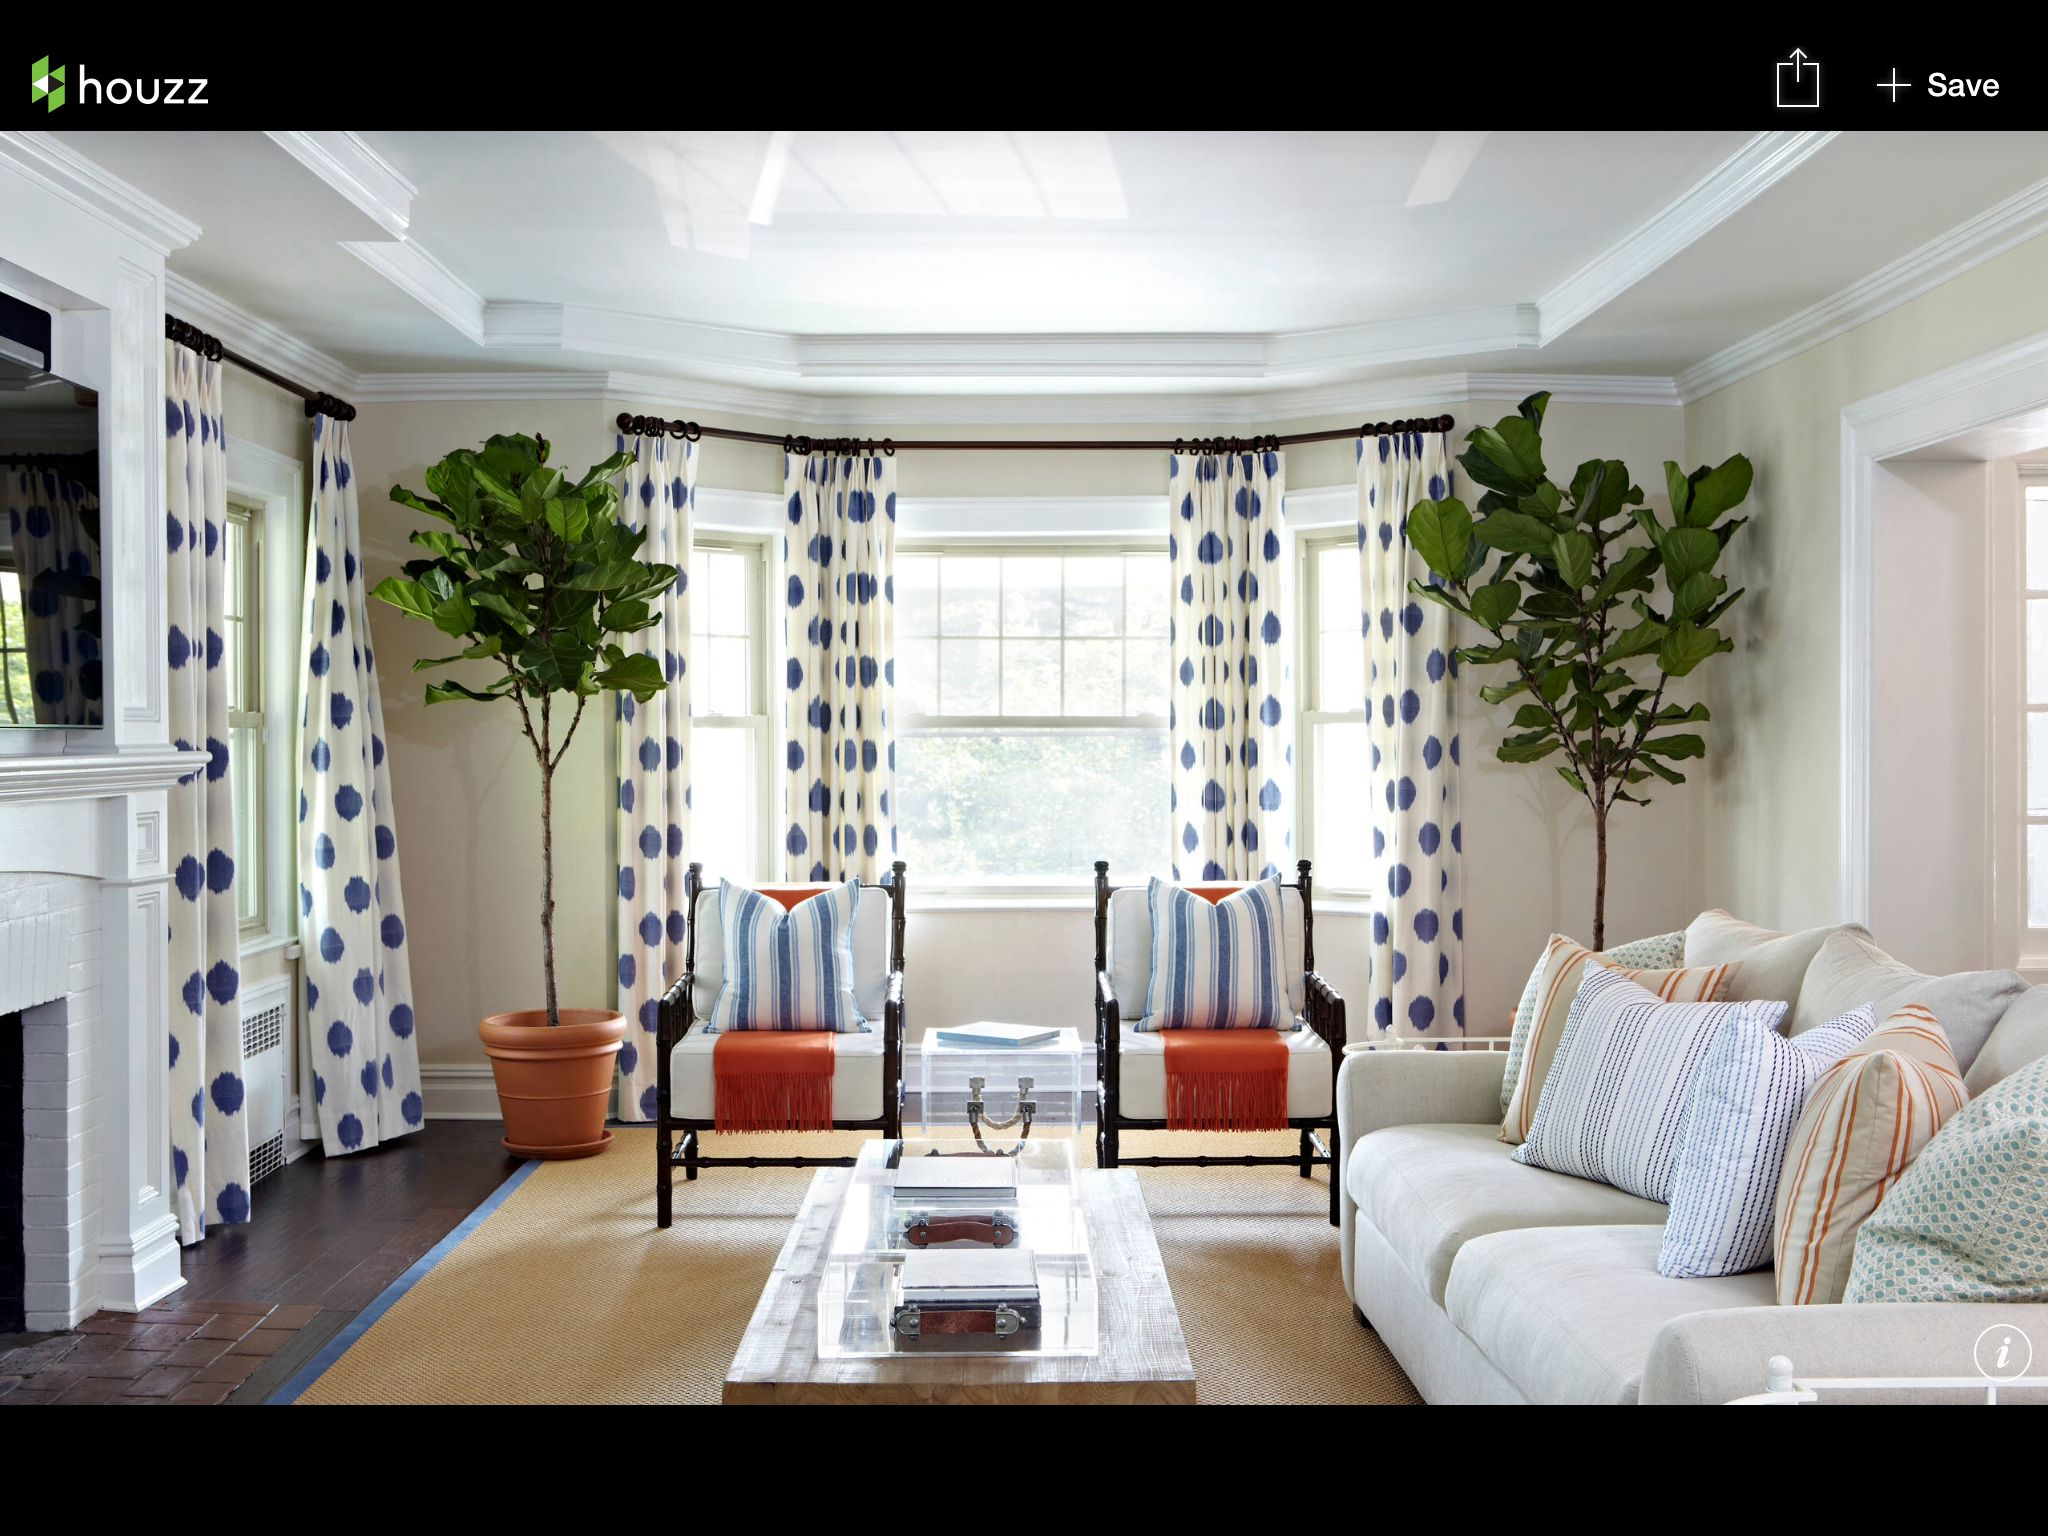 Living Room Design Houzz Cool Living Room Inspiration From Houzz  House Inspiration  Pinterest Design Ideas